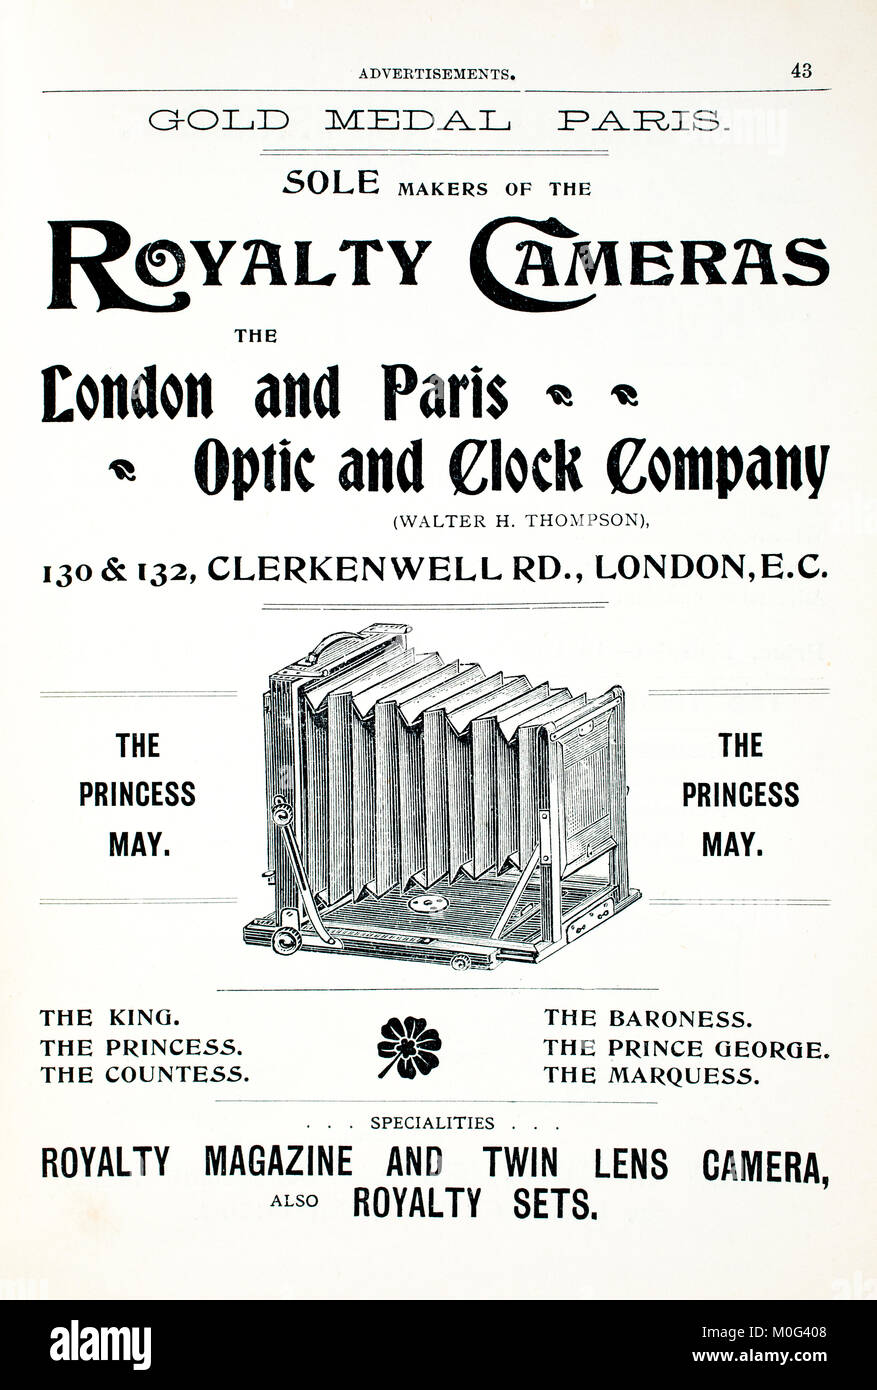 Royalty Cameras advertisements from Photography In A